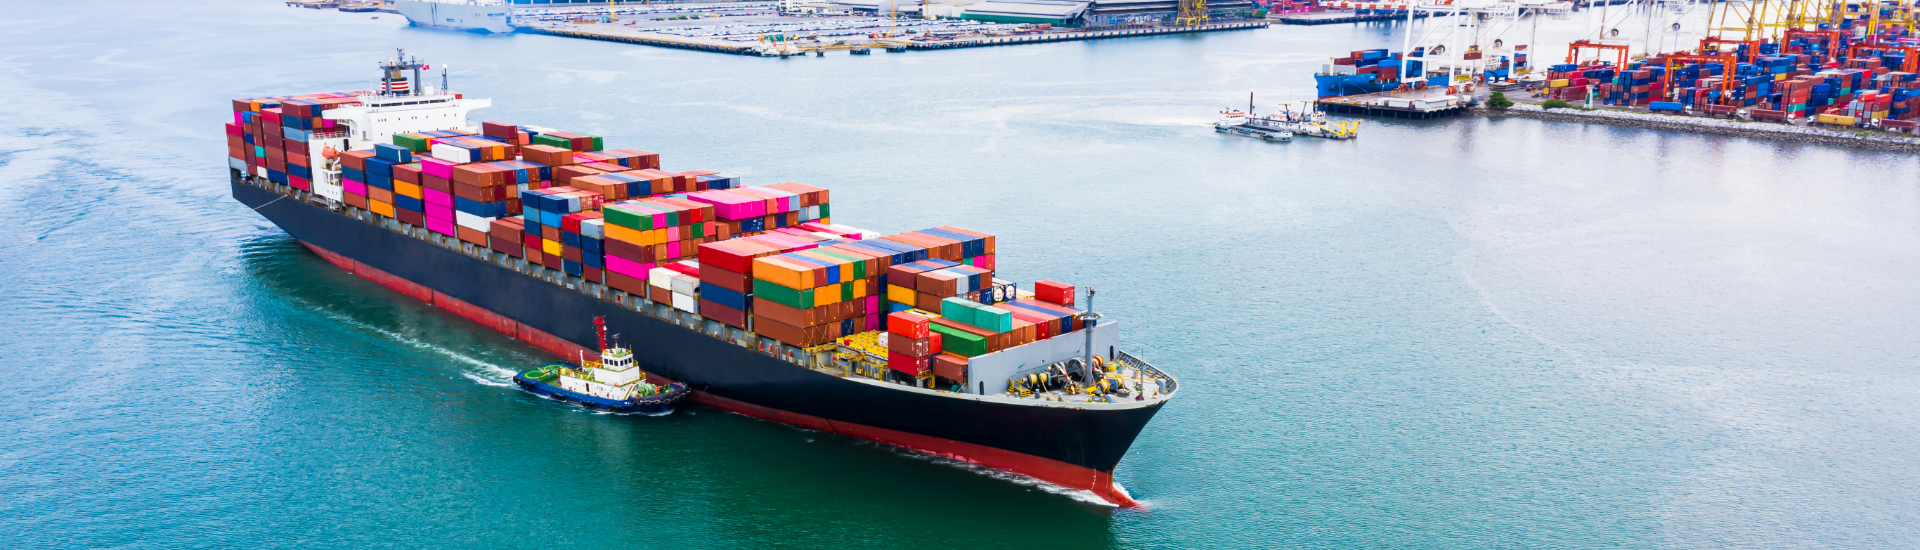 Guided-Imports-China-Sea-Freight-Services